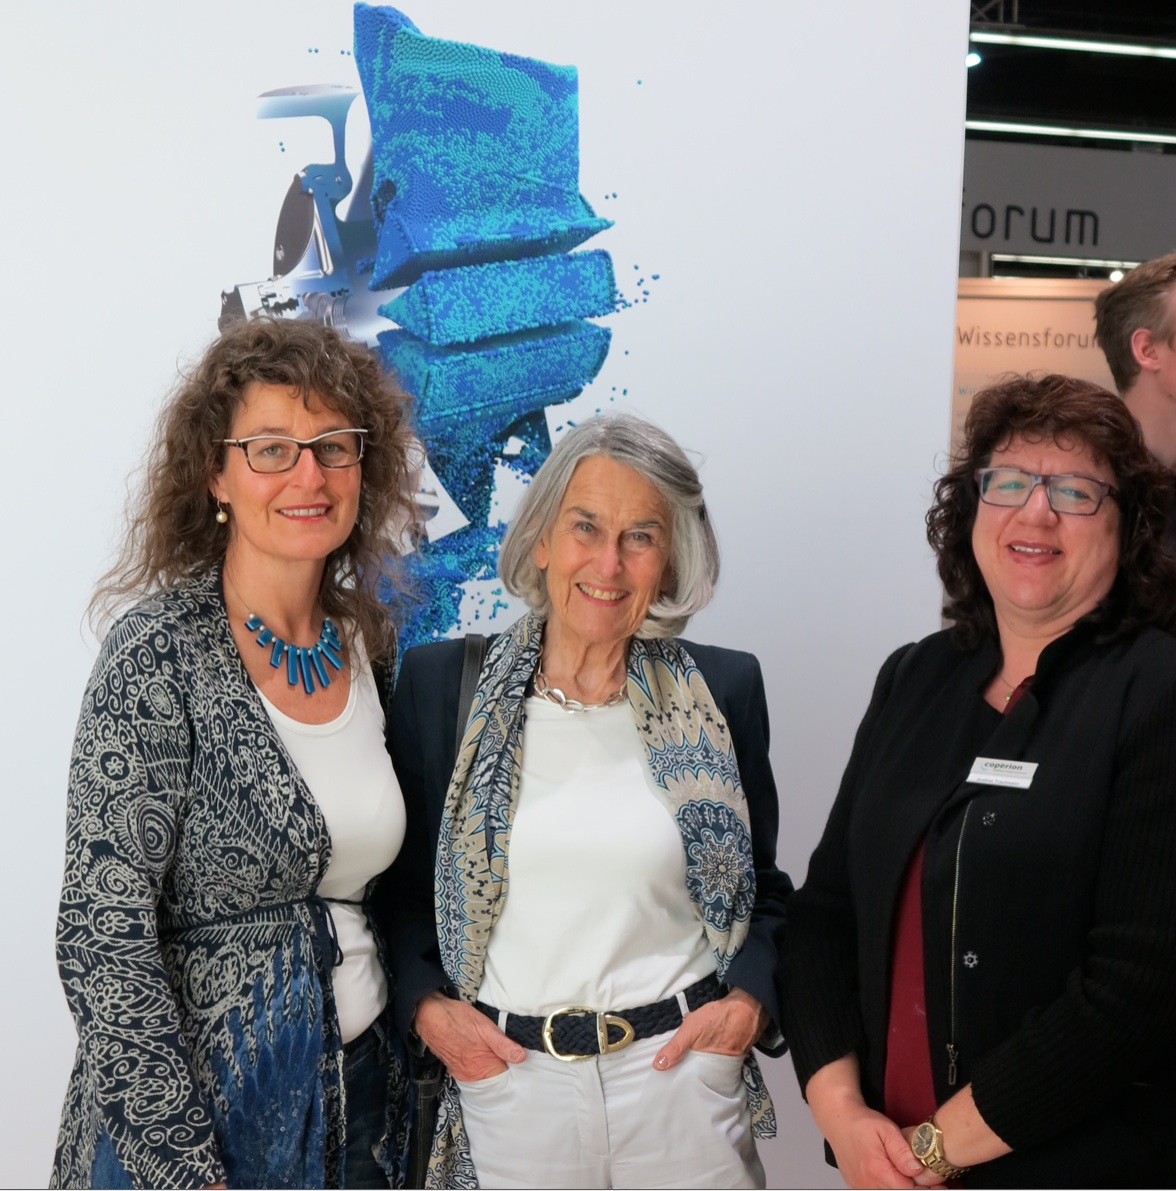 Claudia Hauser, NürnbergMesse, Ute Wöhlbier and Andrea Trautmann, Marketing Manager, Coperion, Weingarten, Germany (from left)